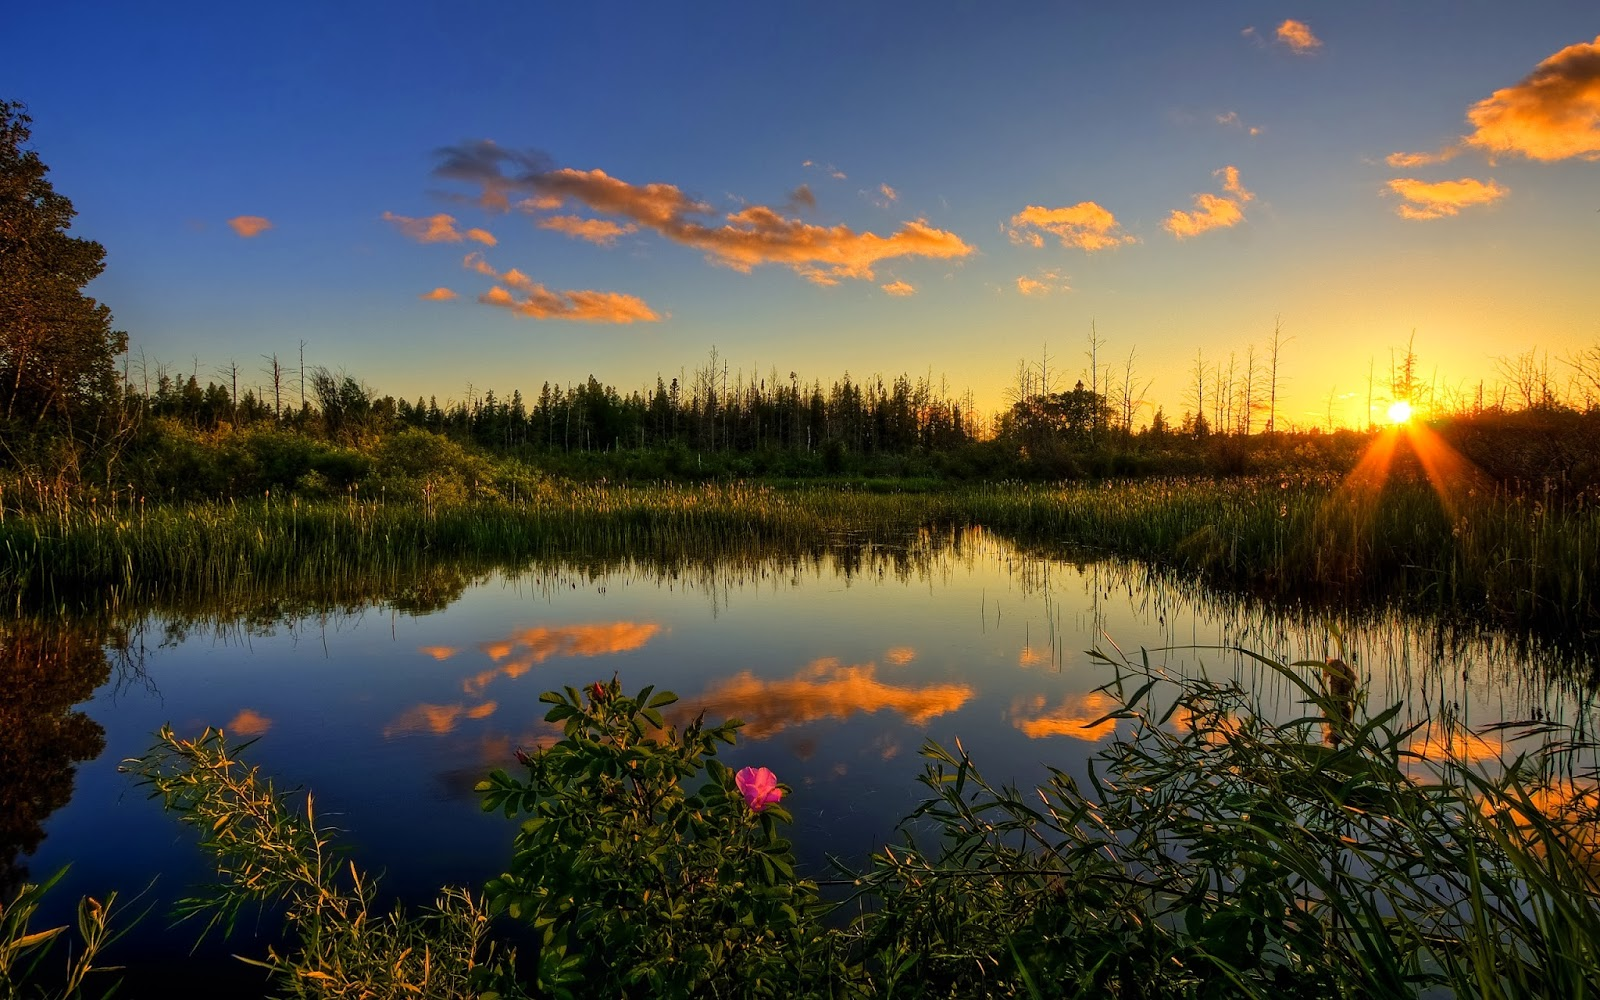 Peaceful hd wallpapers Nice Pics Gallery